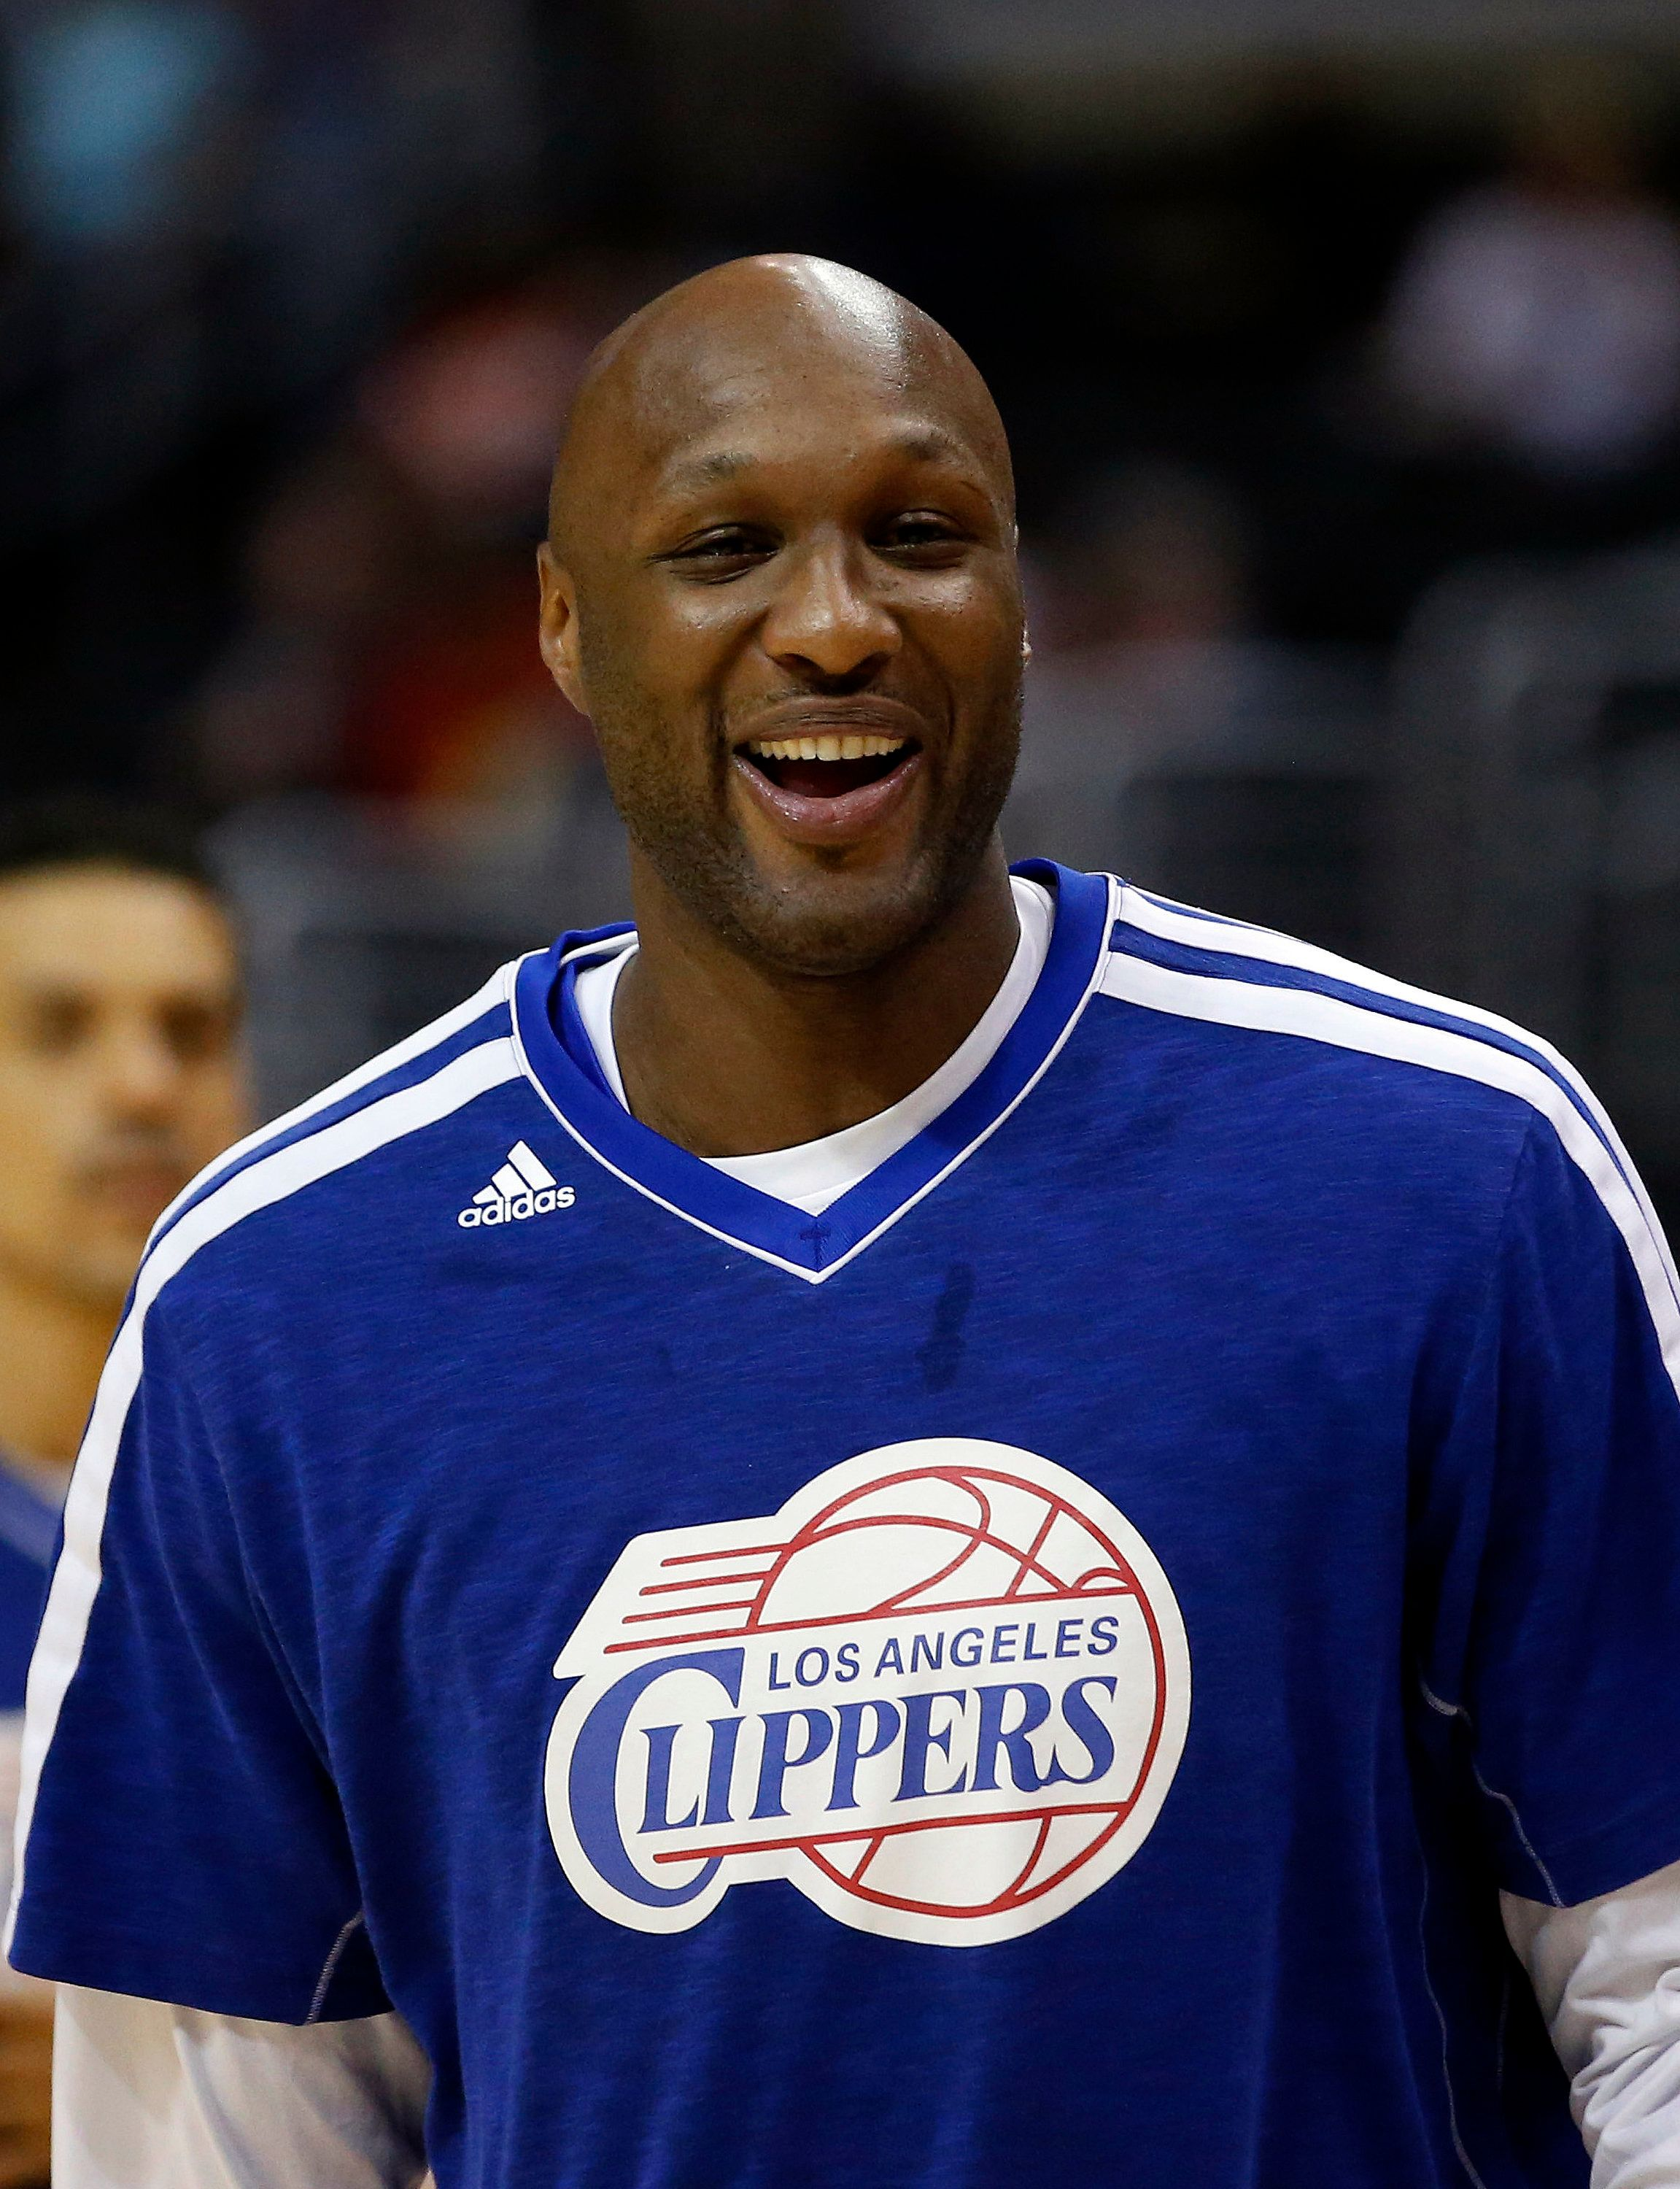 FILE - In this March 13, 2013, file photo, Los Angeles Clippers' Lamar Odom smiles during NBA basketball practice in Los Angeles. Odom has been charged Friday, Sept. 13, 2013, with a misdemeanour count of driving under the influence, nearly two weeks after his Mercedes-Benz was pulled over on a Southern California freeway. The Los Angeles city attorney's office said that the charges stem from Odom's Aug. 30 arrest in the San Fernando Valley. (AP Photo/Jae C. Hong, File)